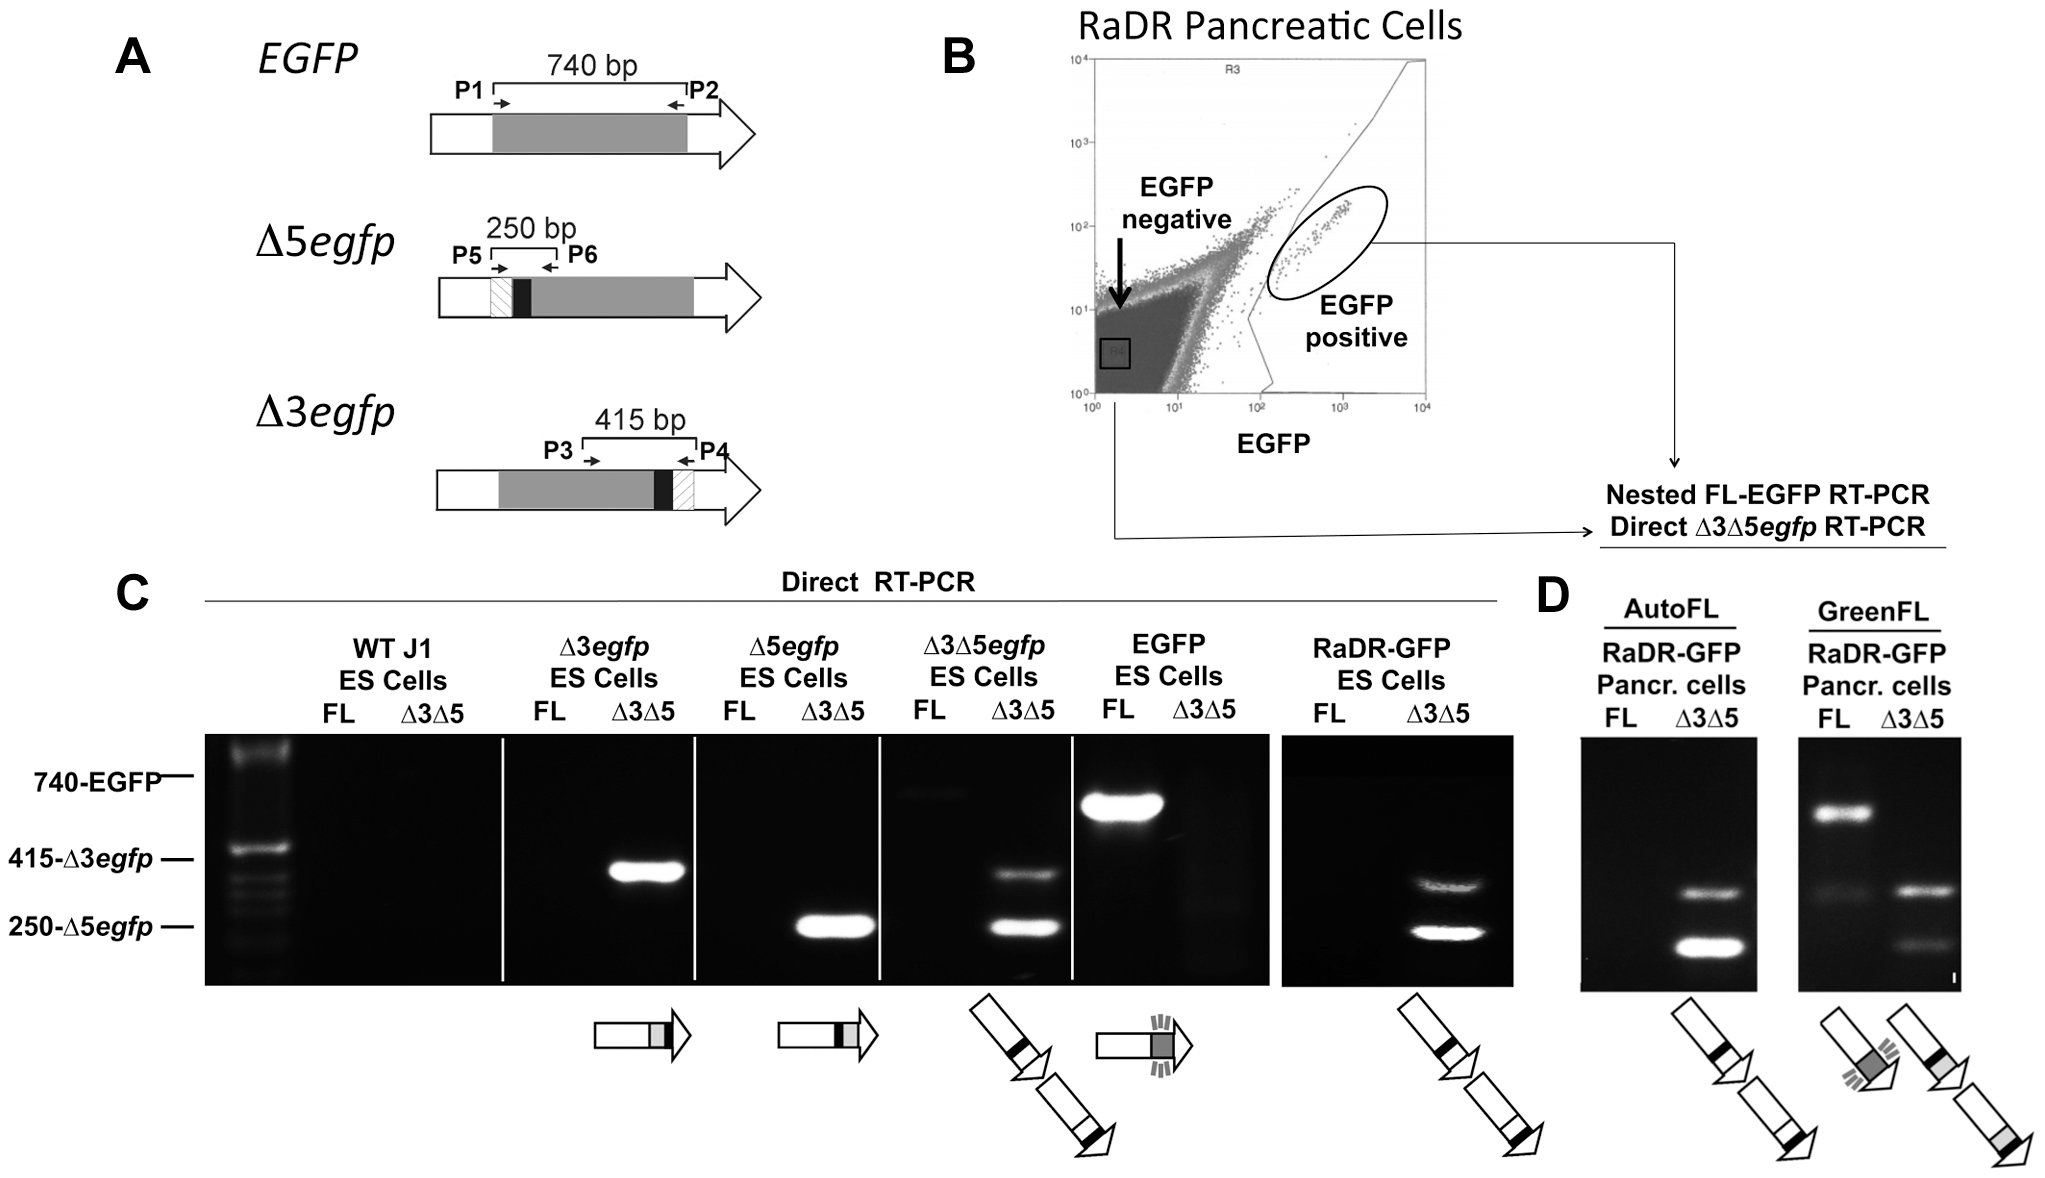 HR leads to reconstitution of full-length <i>EGFP</i> coding sequence within green fluorescent RaDR-GFP pancreatic cells.